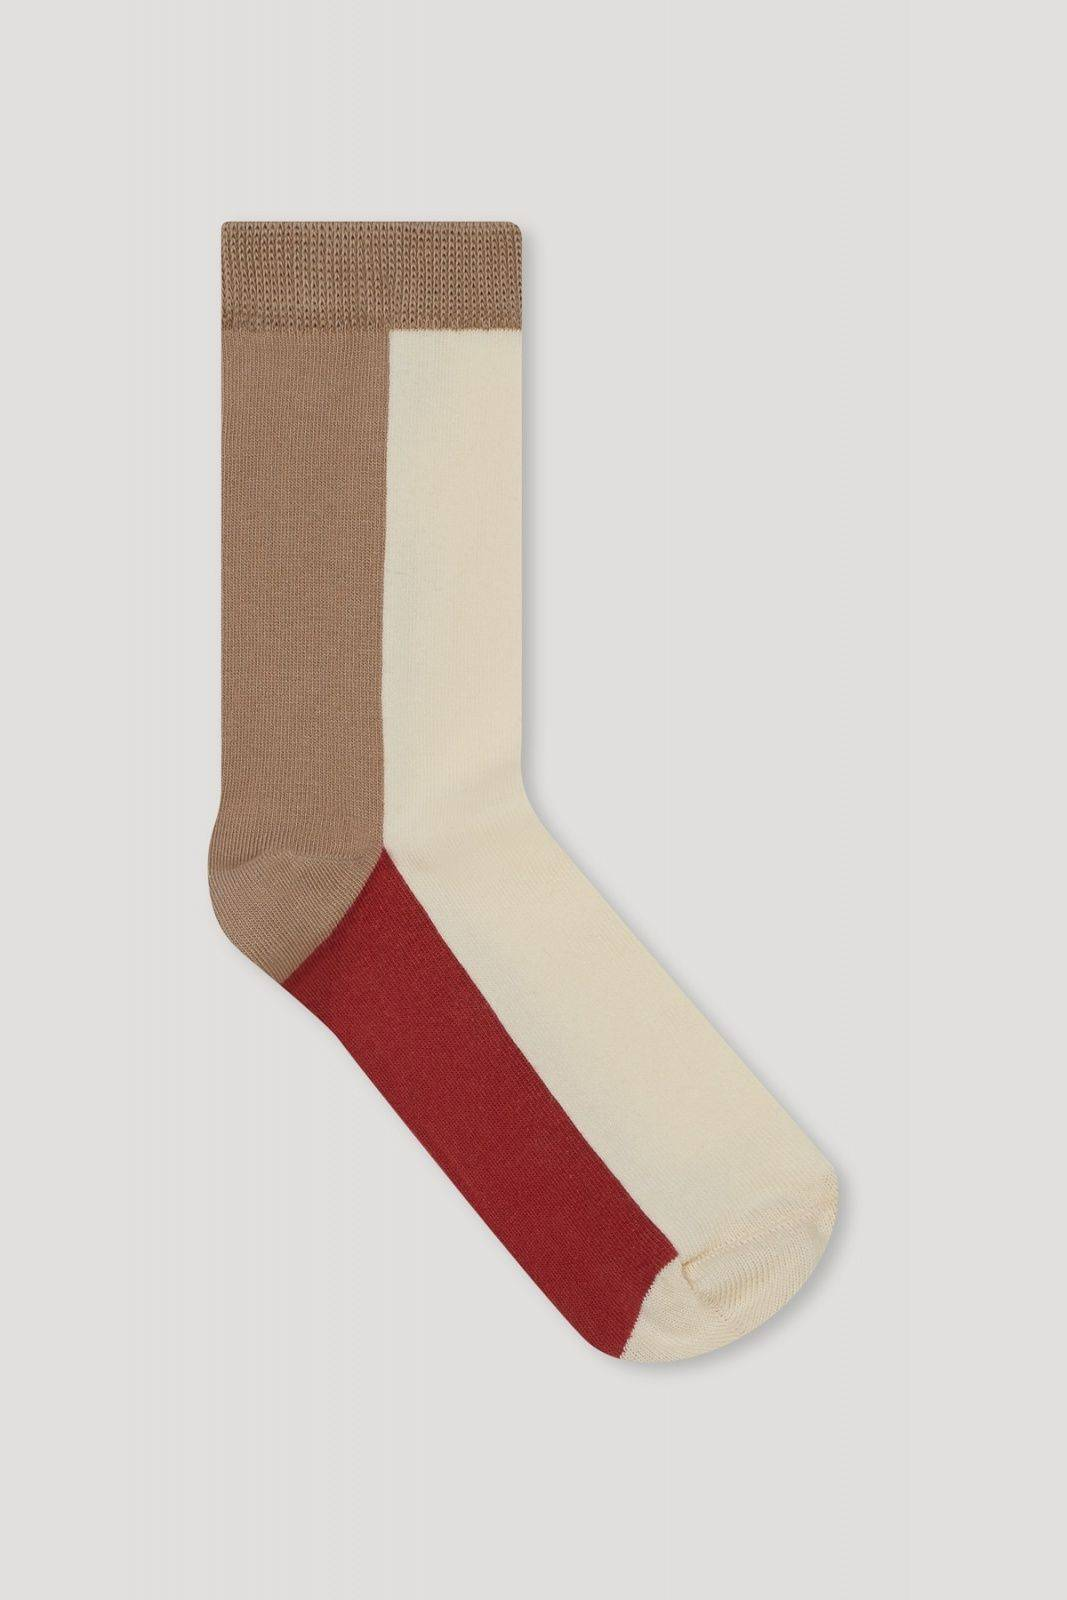 Copy of COLOR BLOCK SOCKS - Taupe - Les Goodies